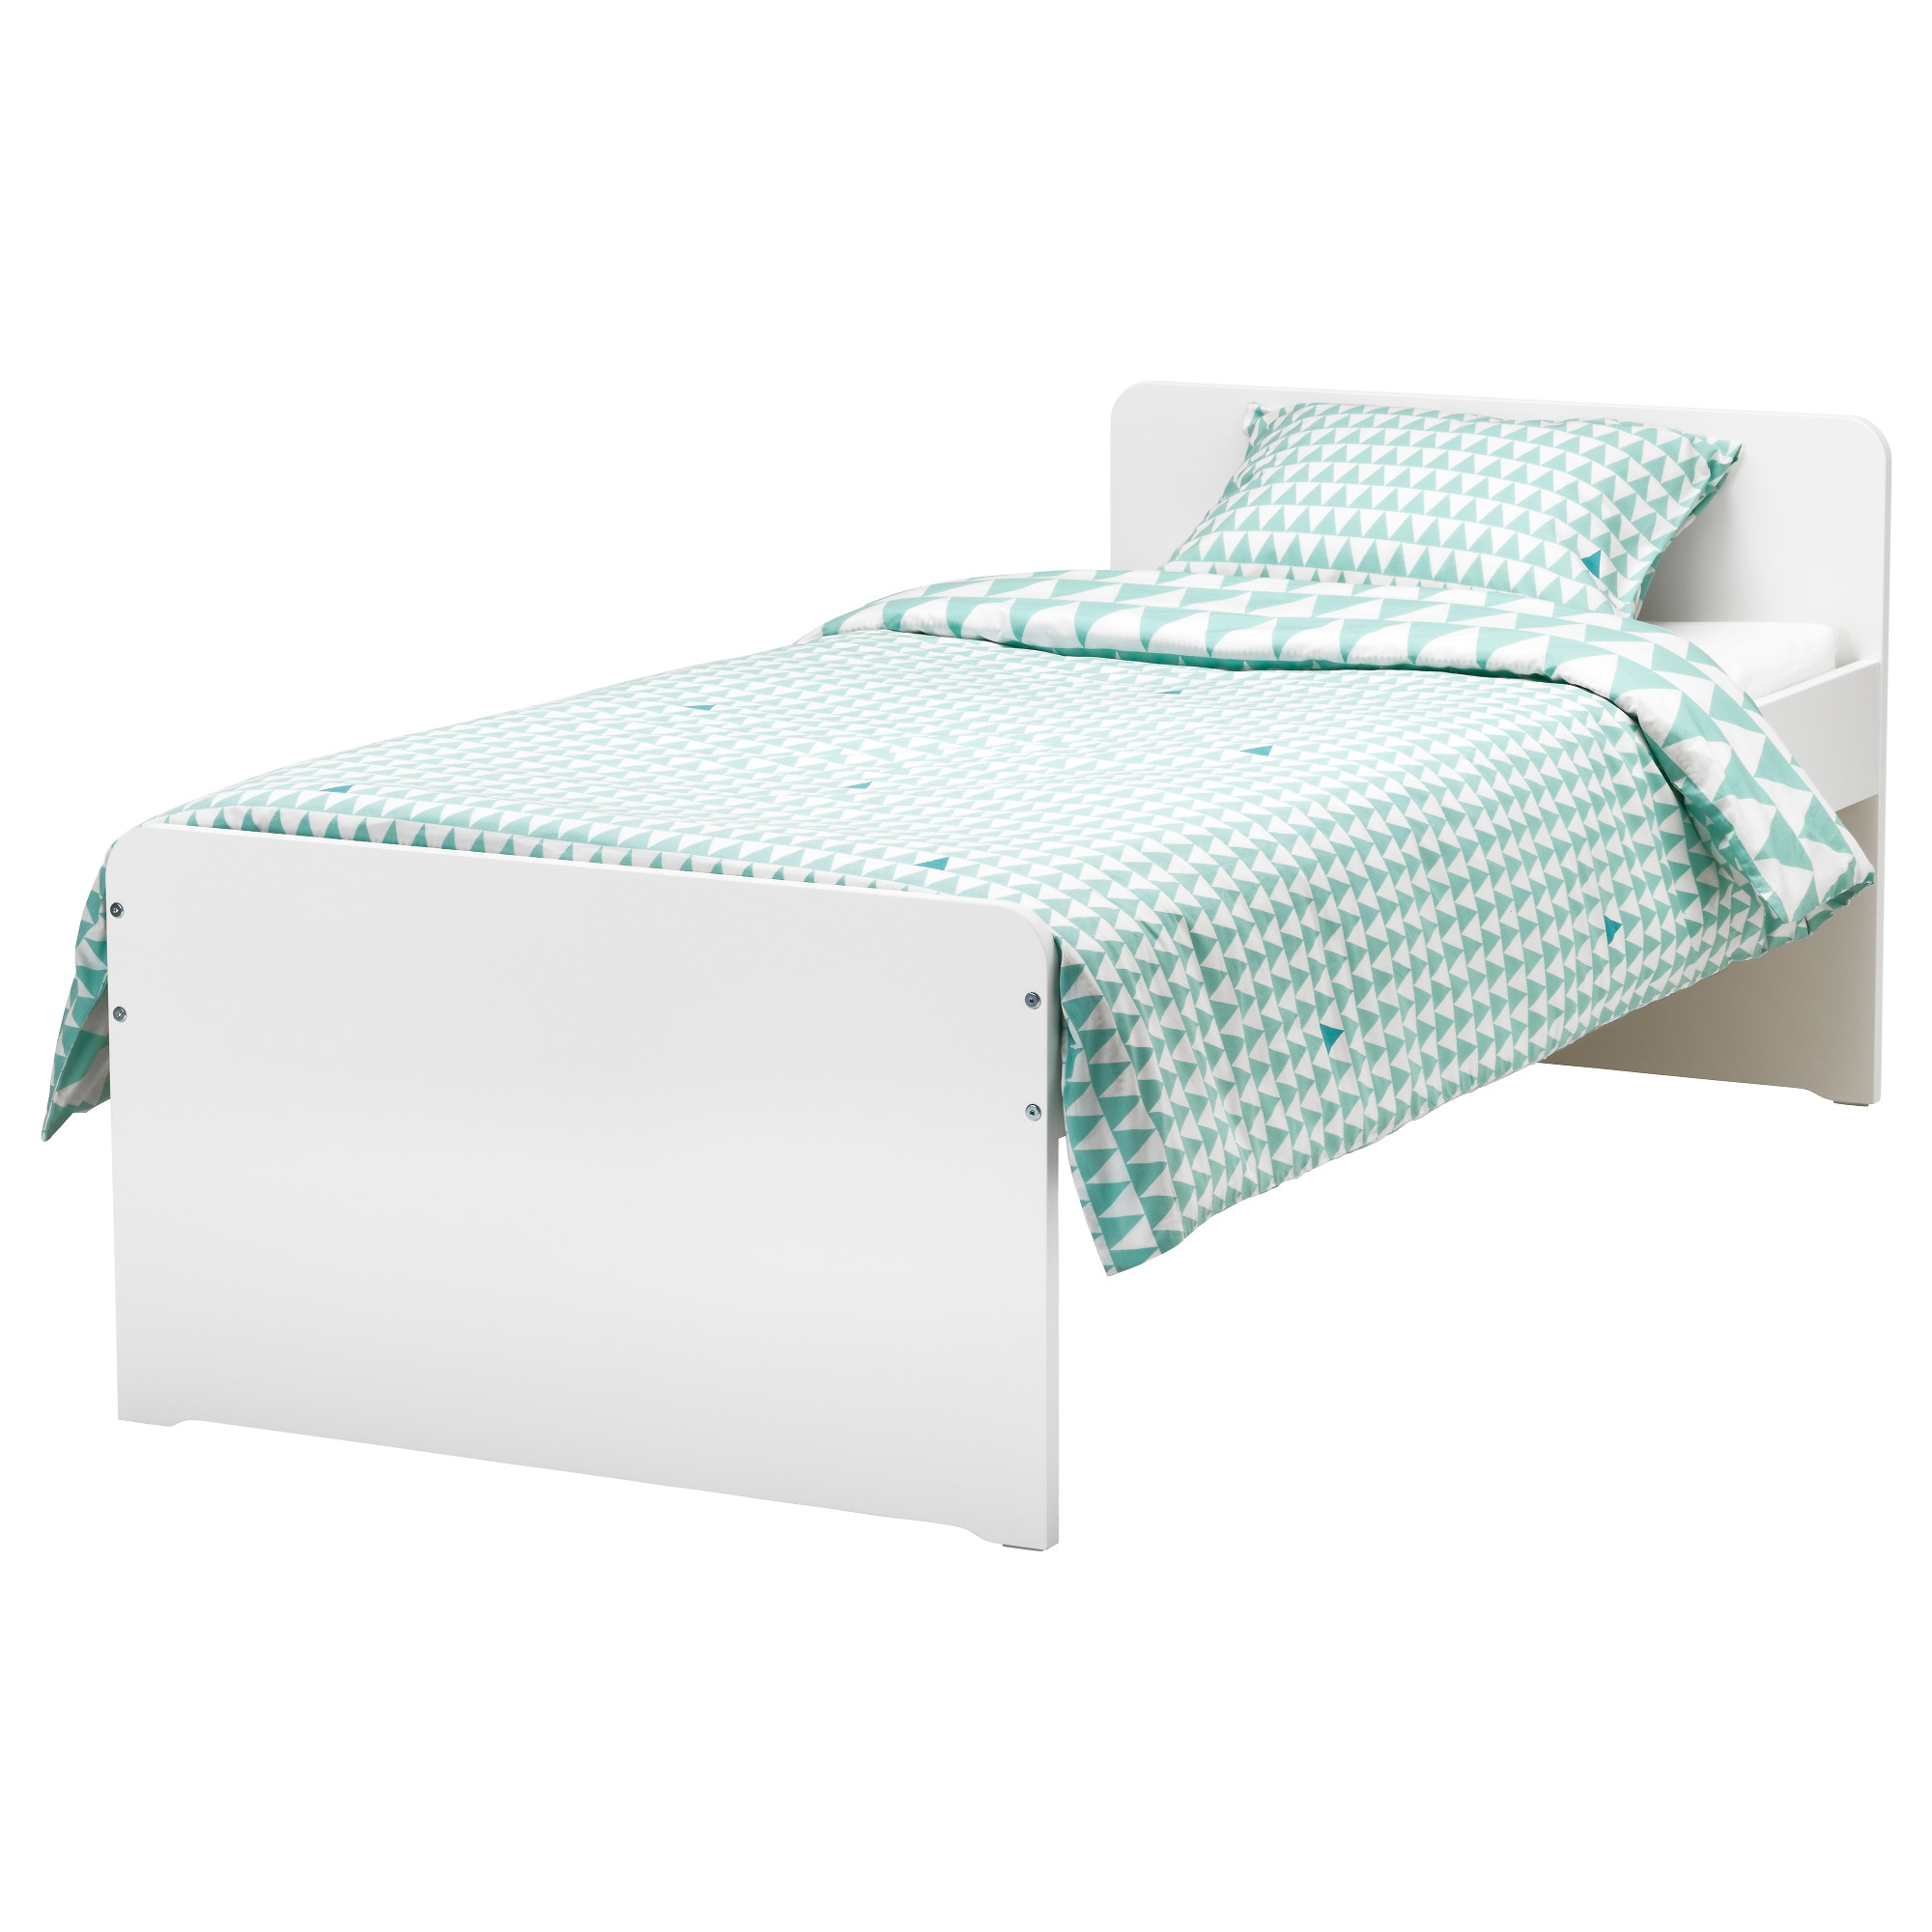 "SL""KT Bed frame with slatted bed base IKEA"